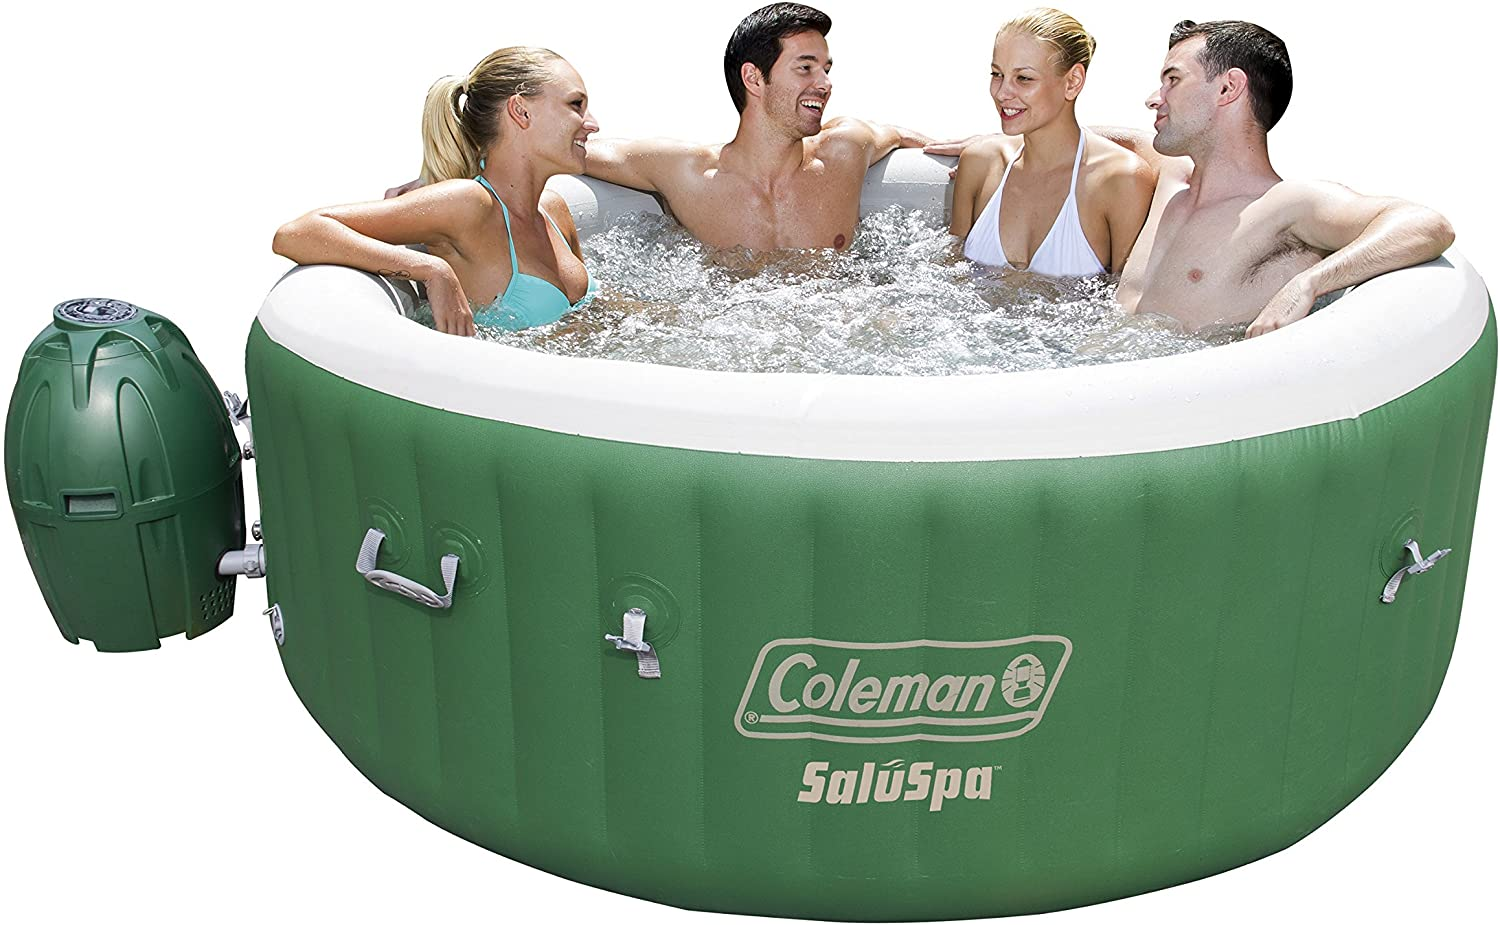 Can Inflatable Hot Tubs Be Used Indoors